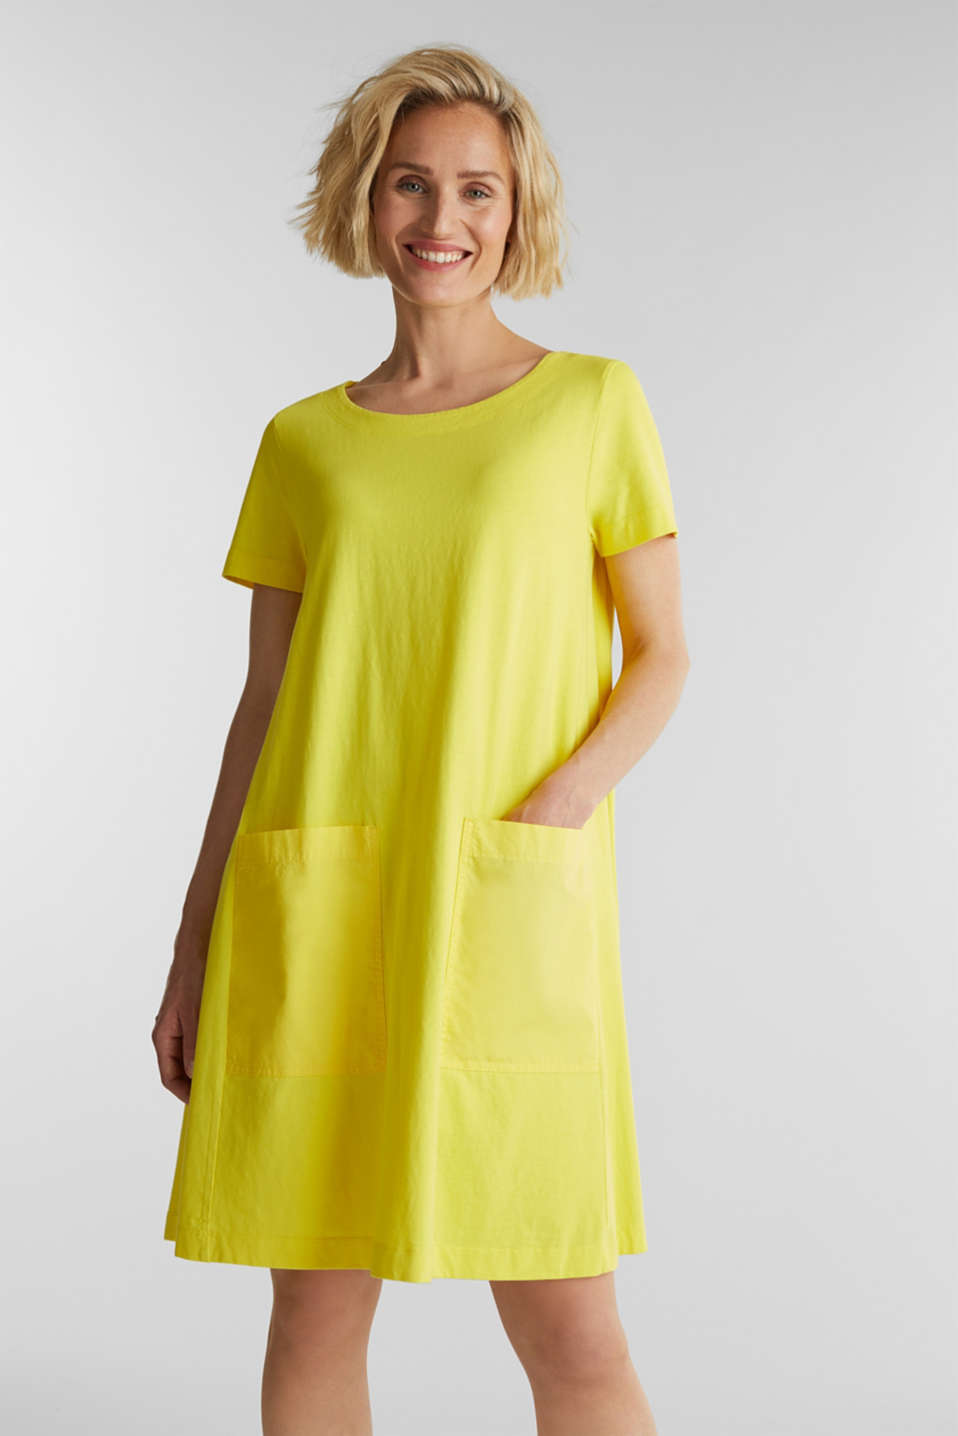 Esprit - A-line dress made of 100% cotton